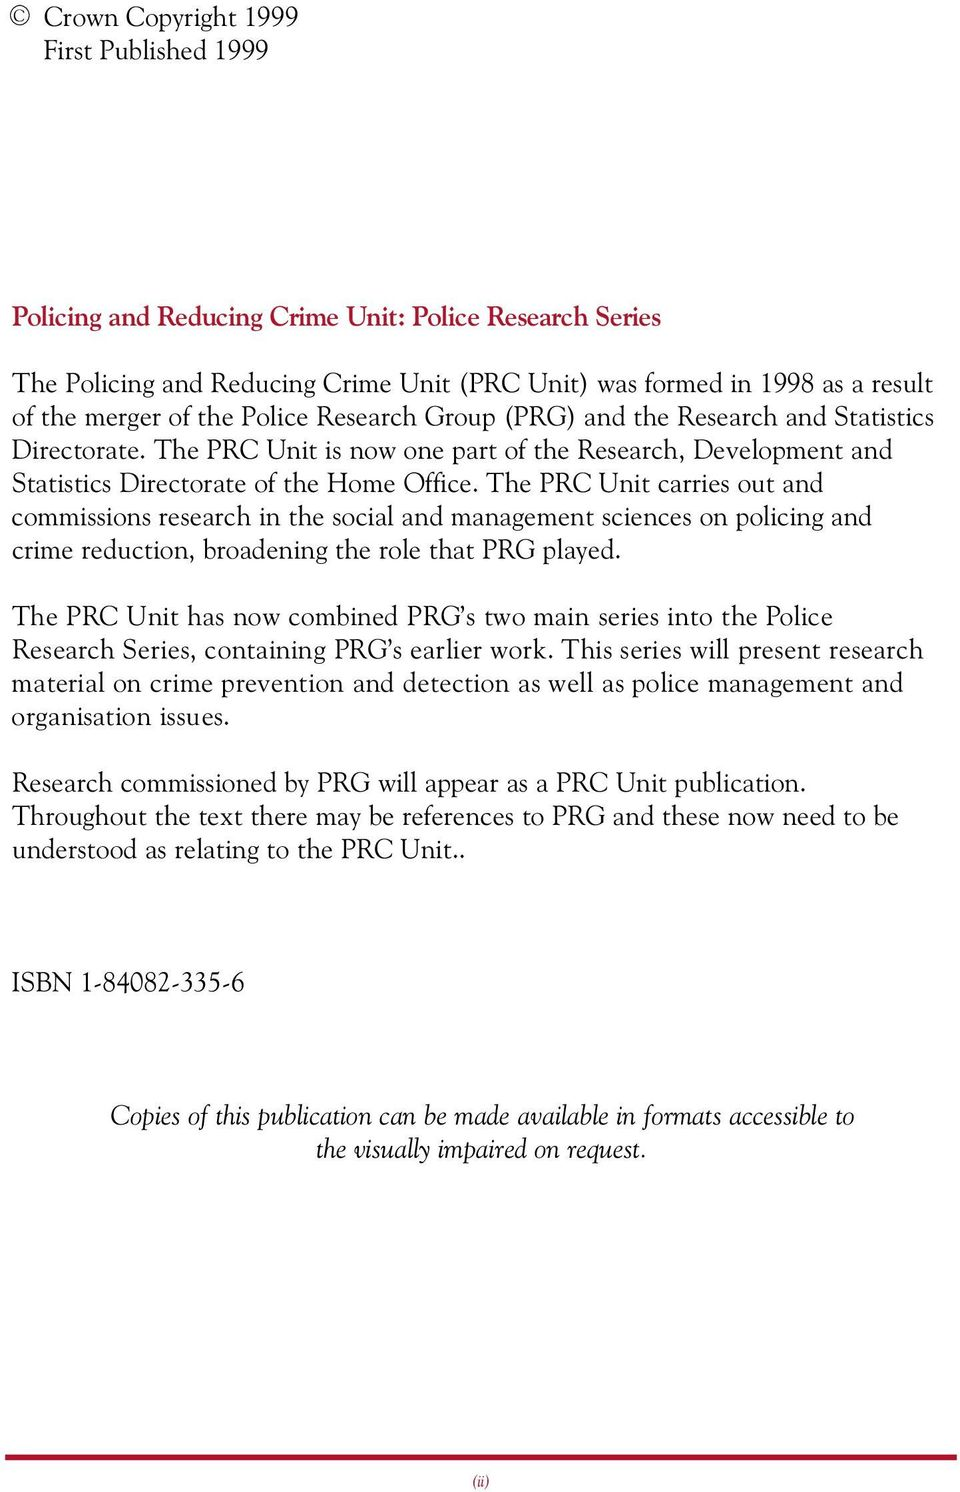 The PRC Unit carries out and commissions research in the social and management sciences on policing and crime reduction, broadening the role that PRG played.